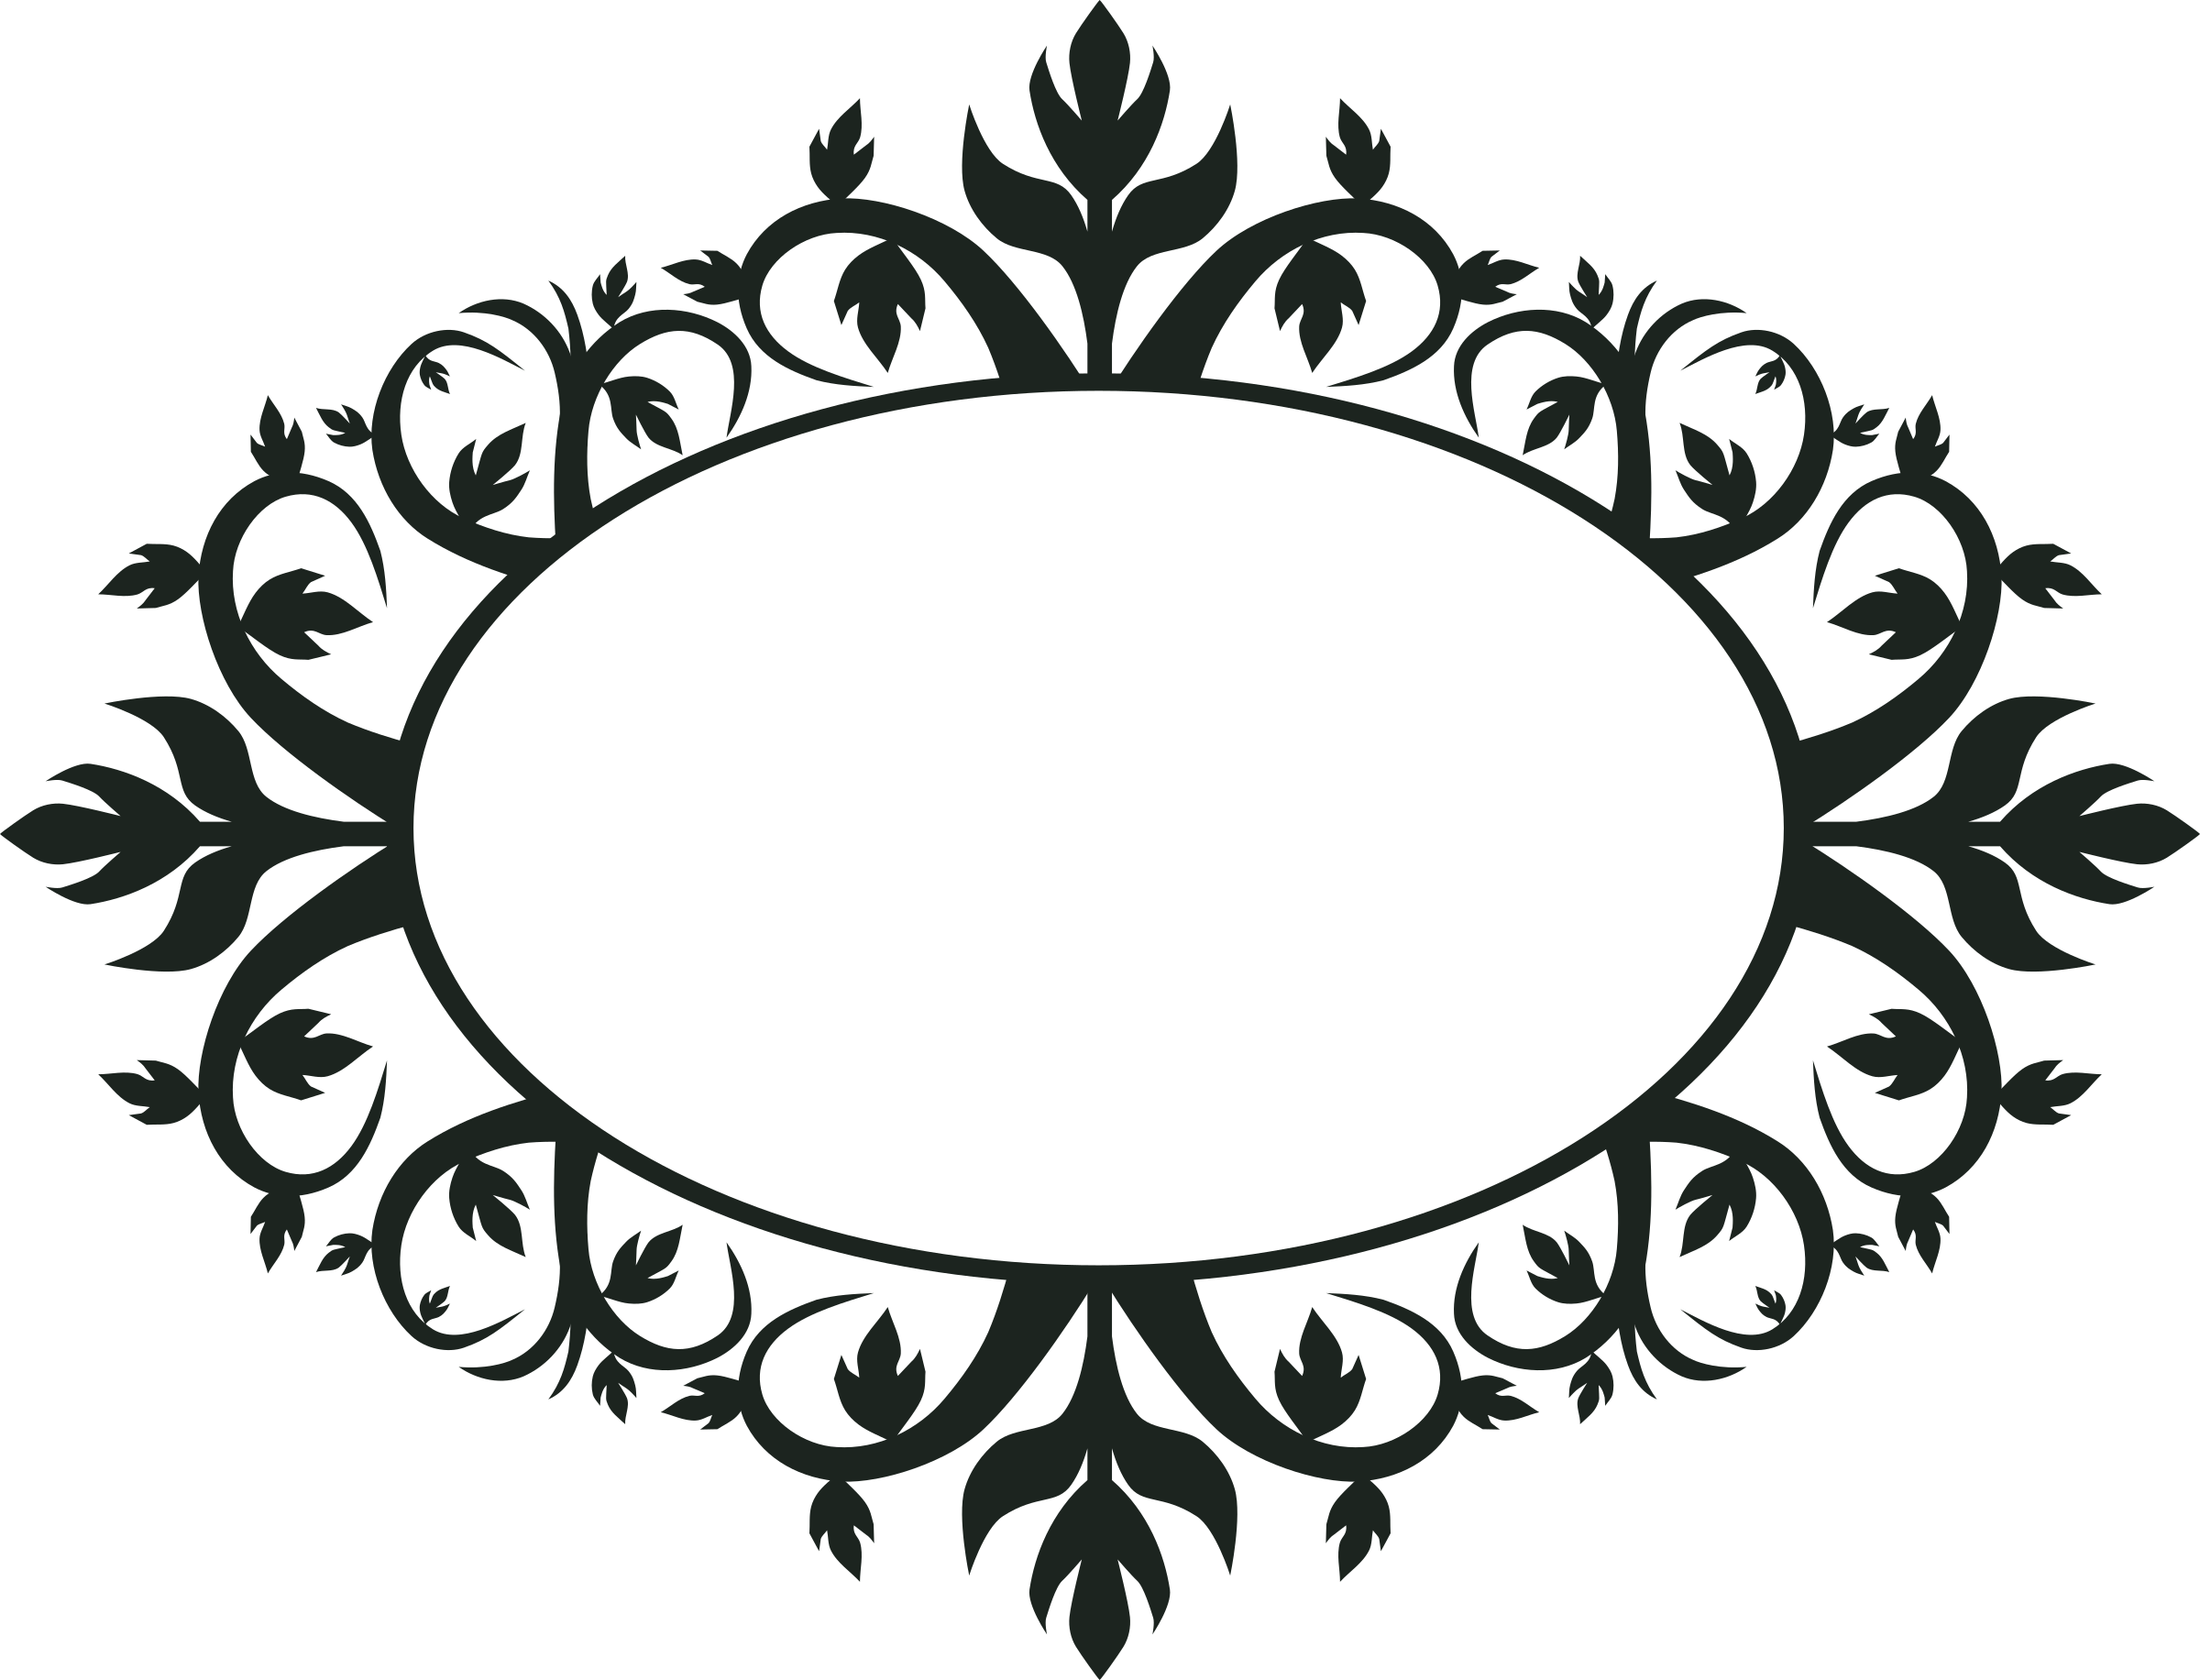 Ornament Oval Frame by jokantola | svg | Pinterest | Oval frame ...